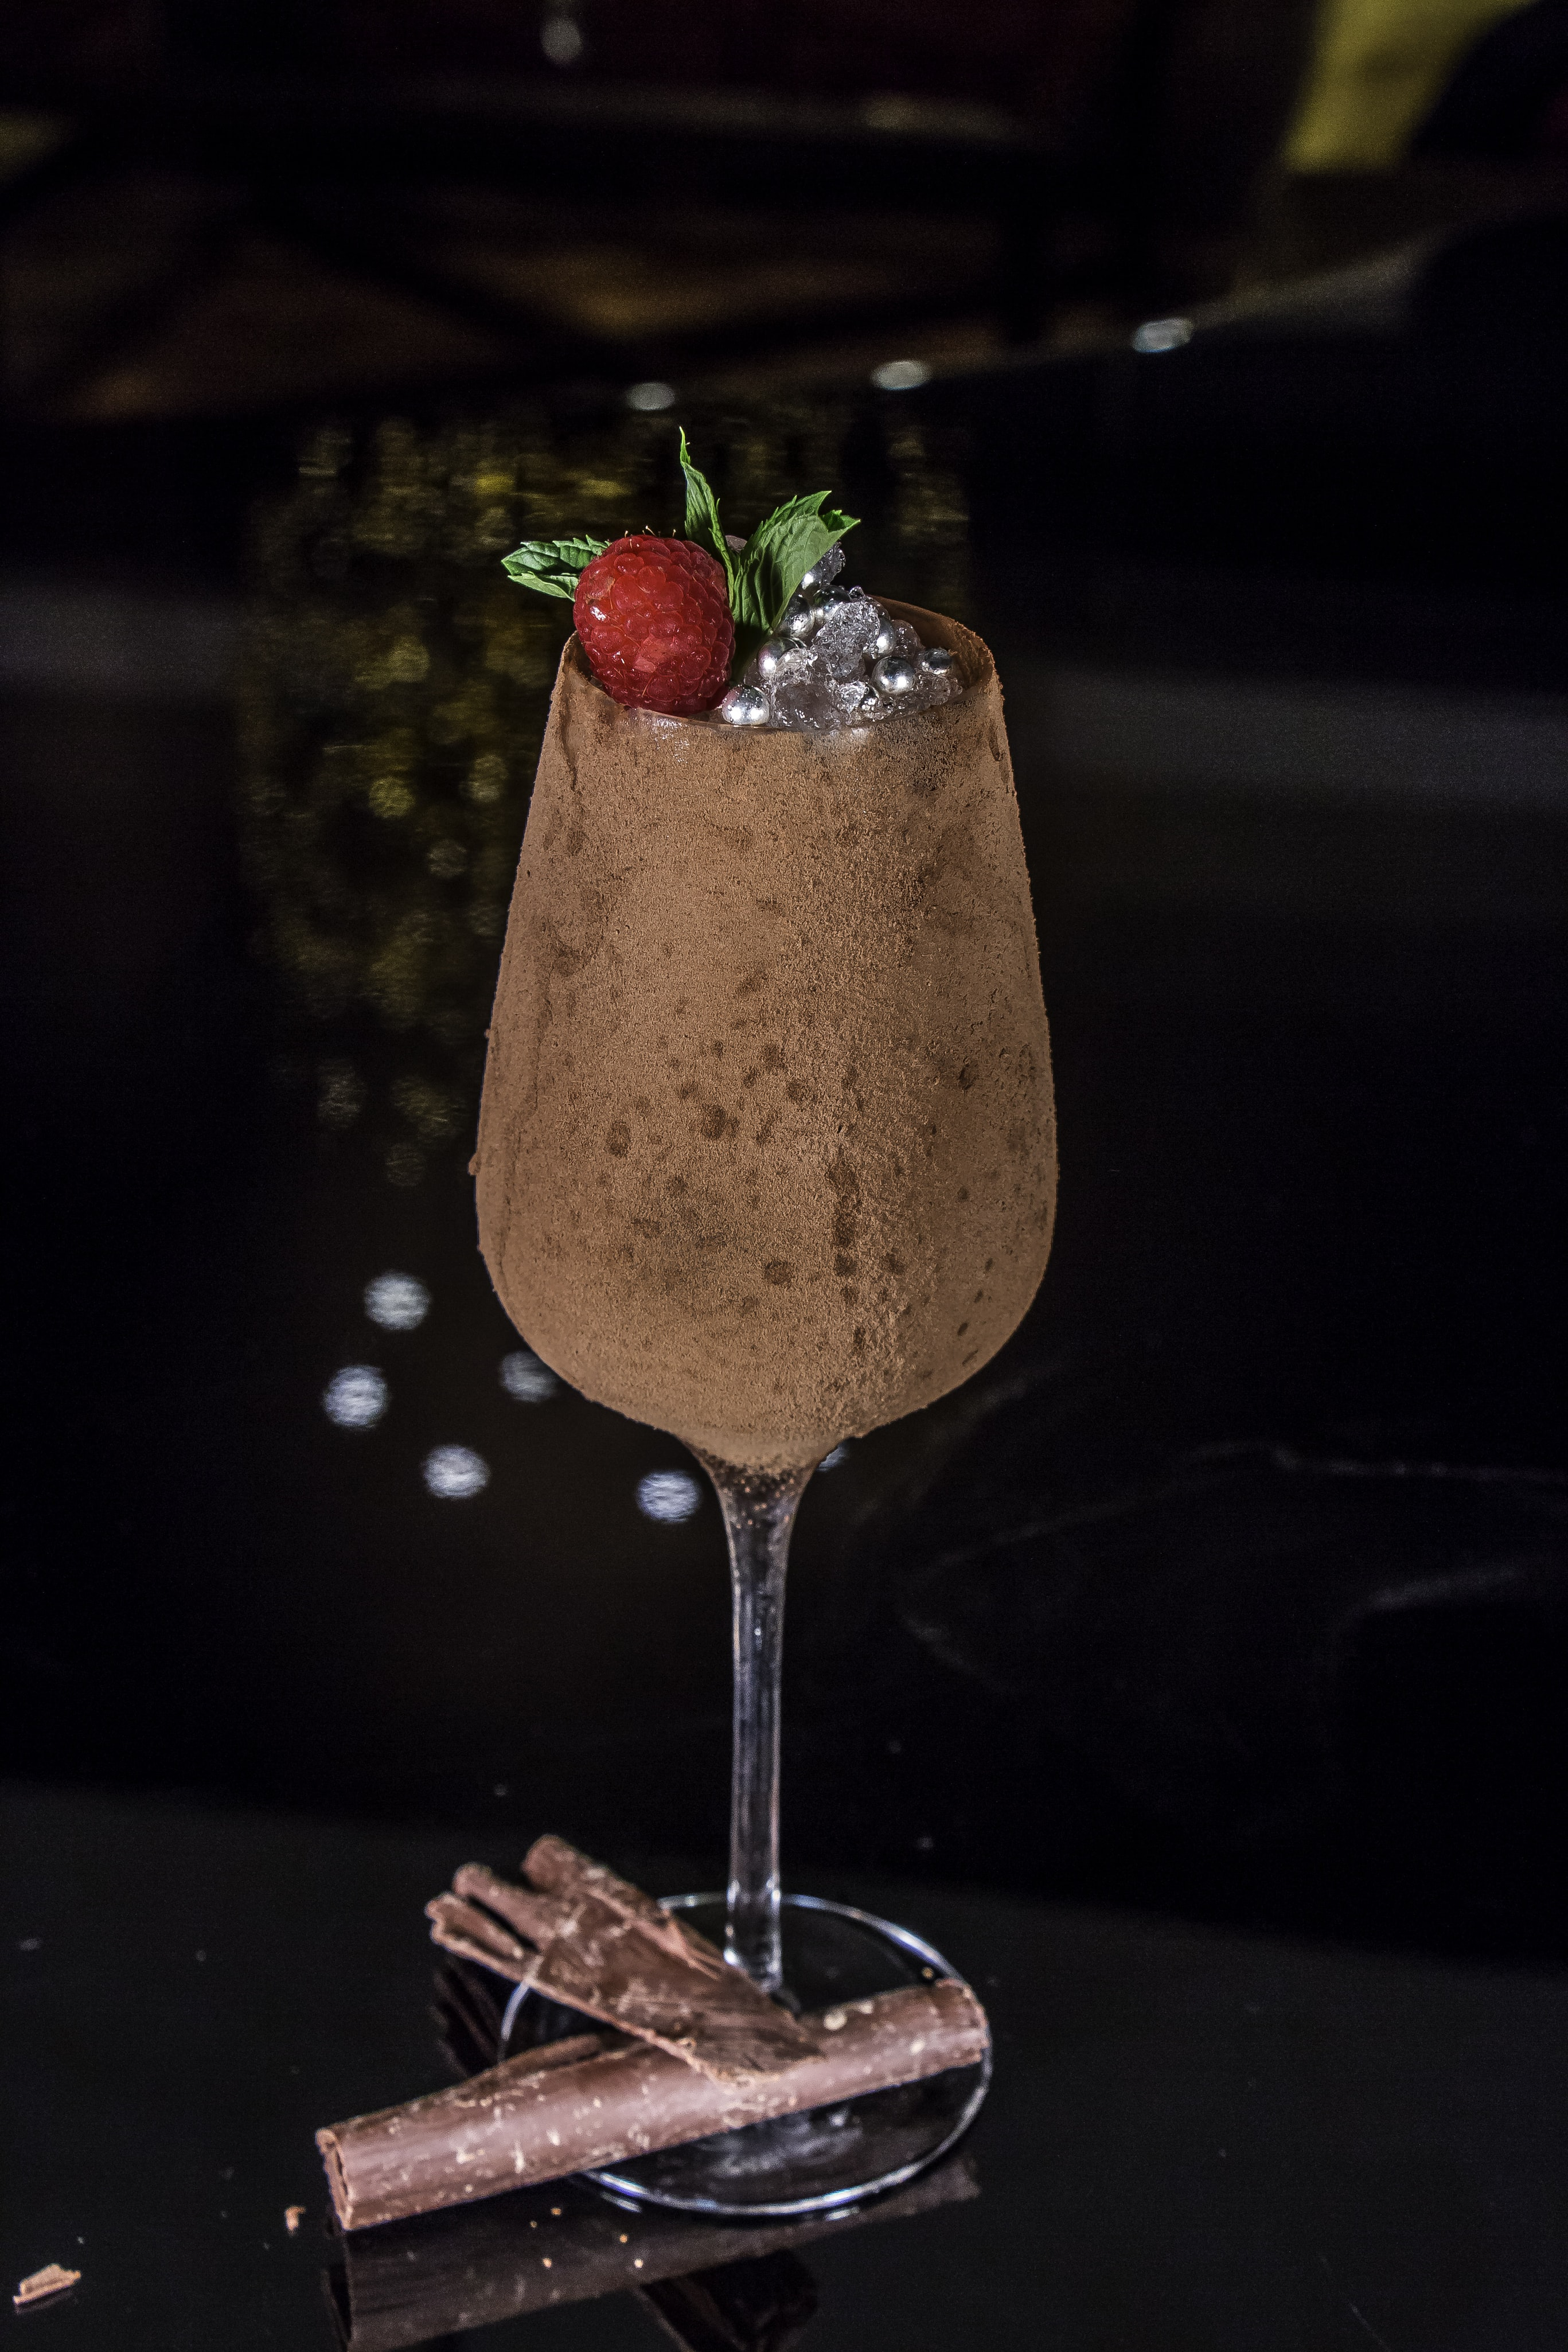 Gallery Image 11 - Chocolate cocktail